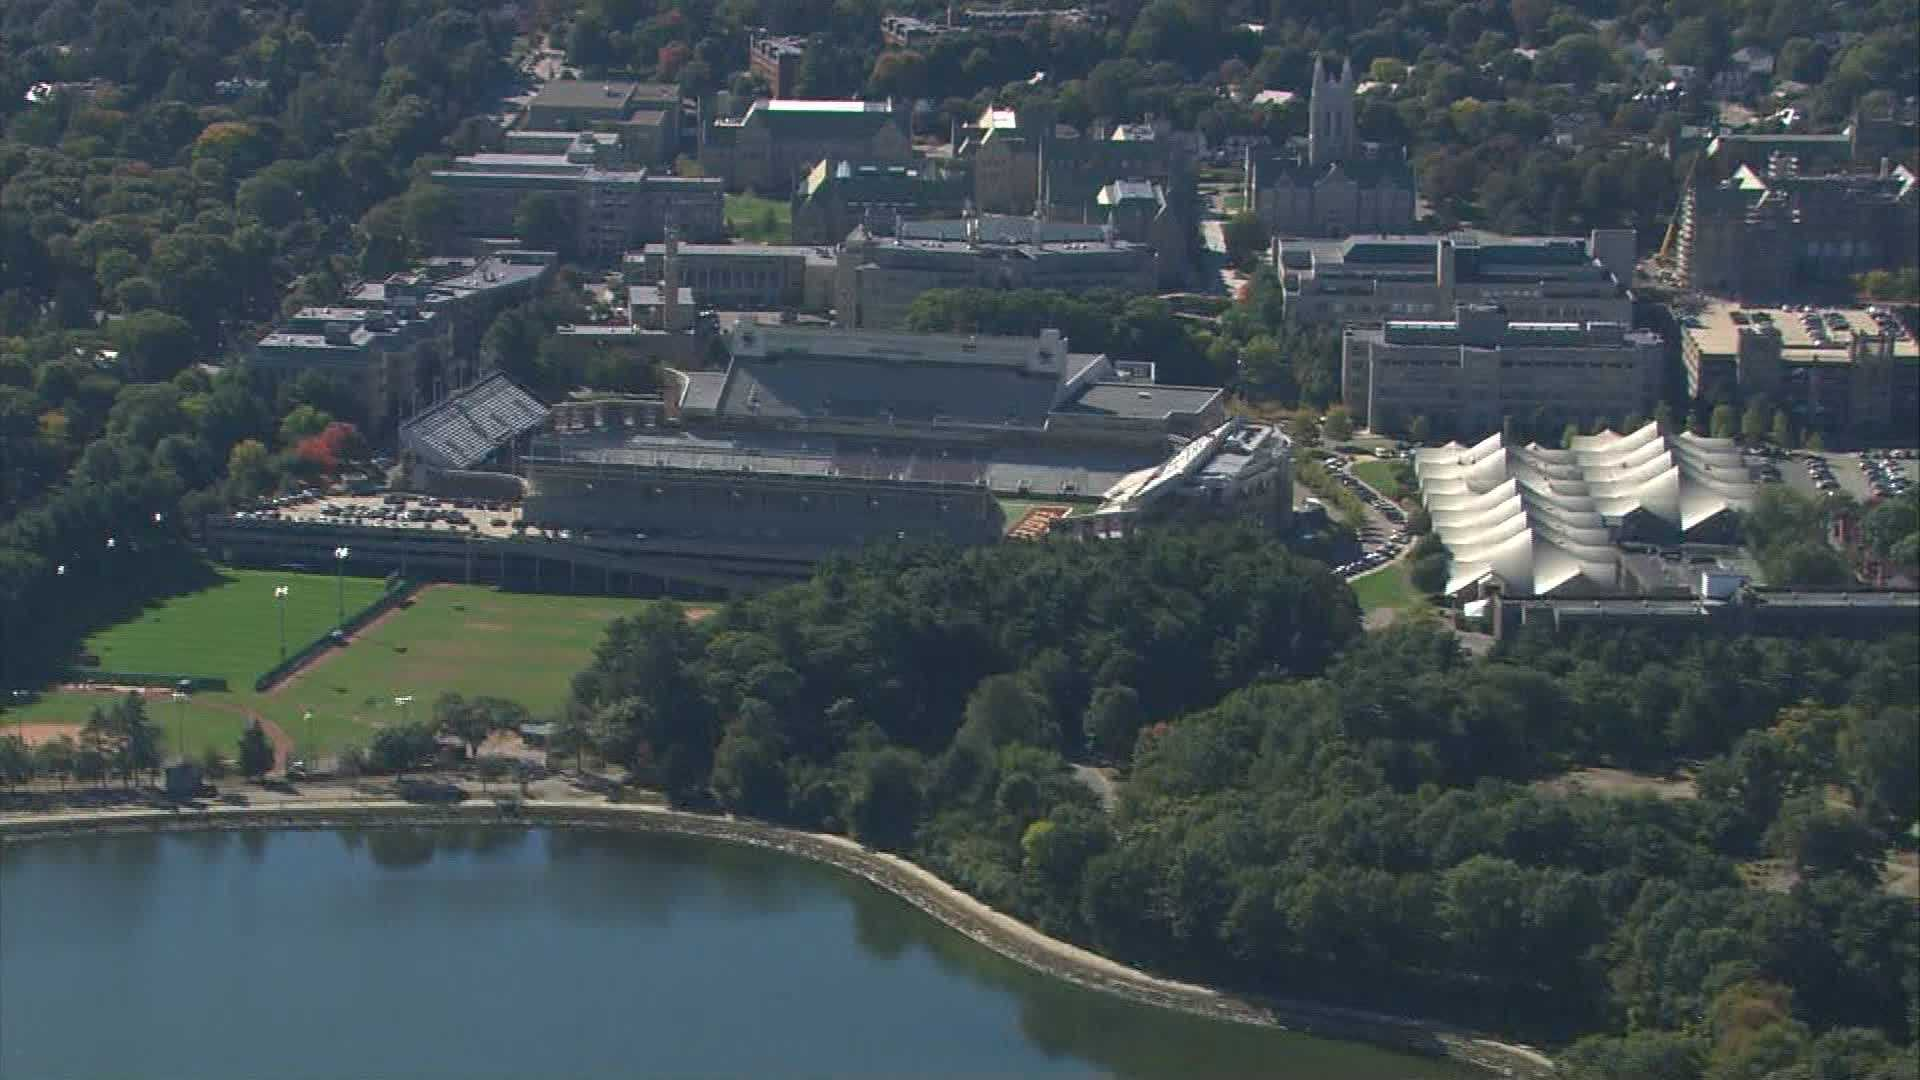 Boston college campus, football